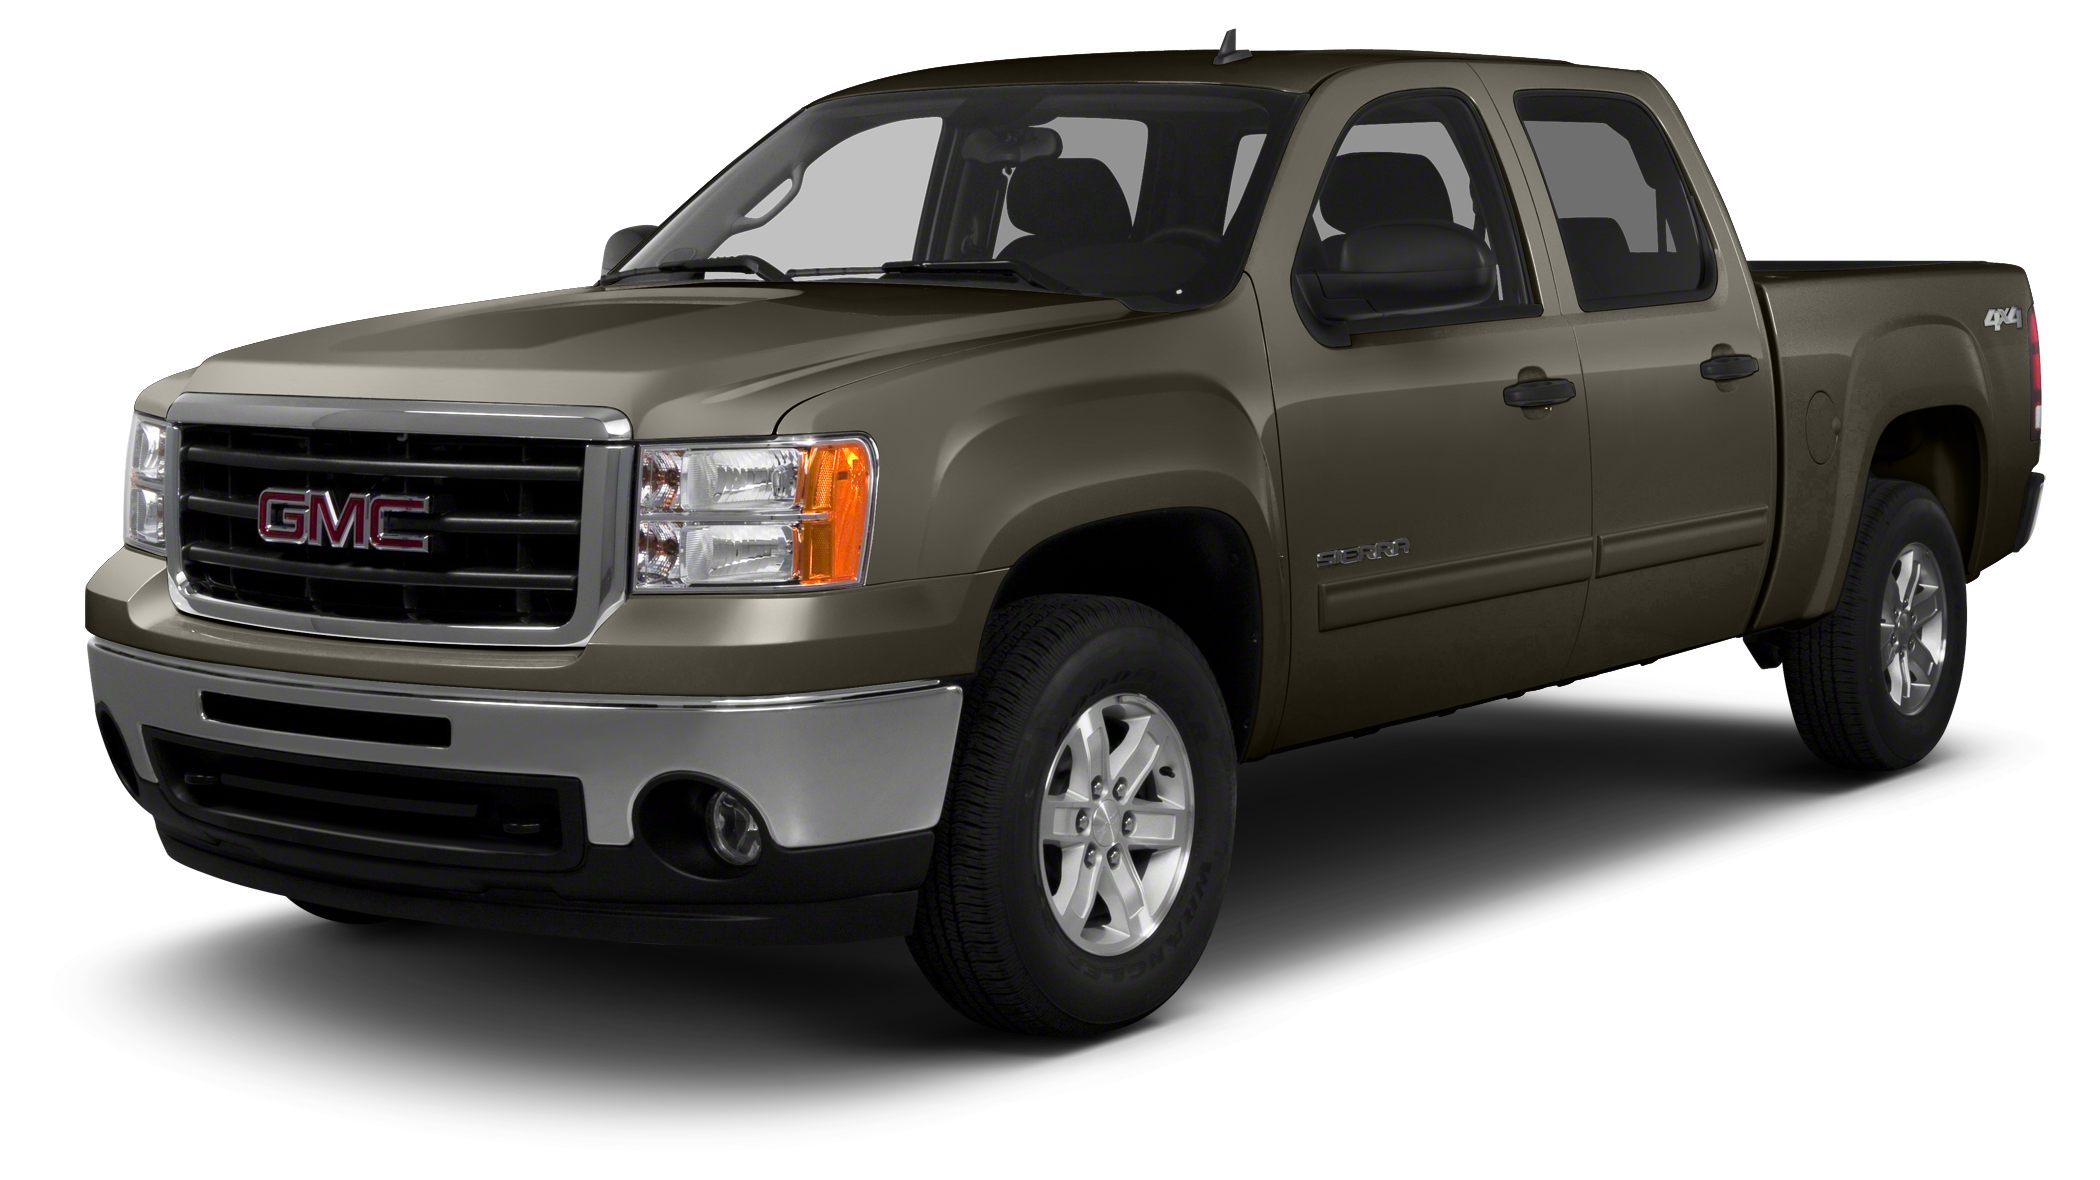 2013 GMC Sierra 1500 SLT ITS OUR 50TH ANNIVERSARY HERE AT MARTYS AND TO CELEBRATE WERE OFFERING